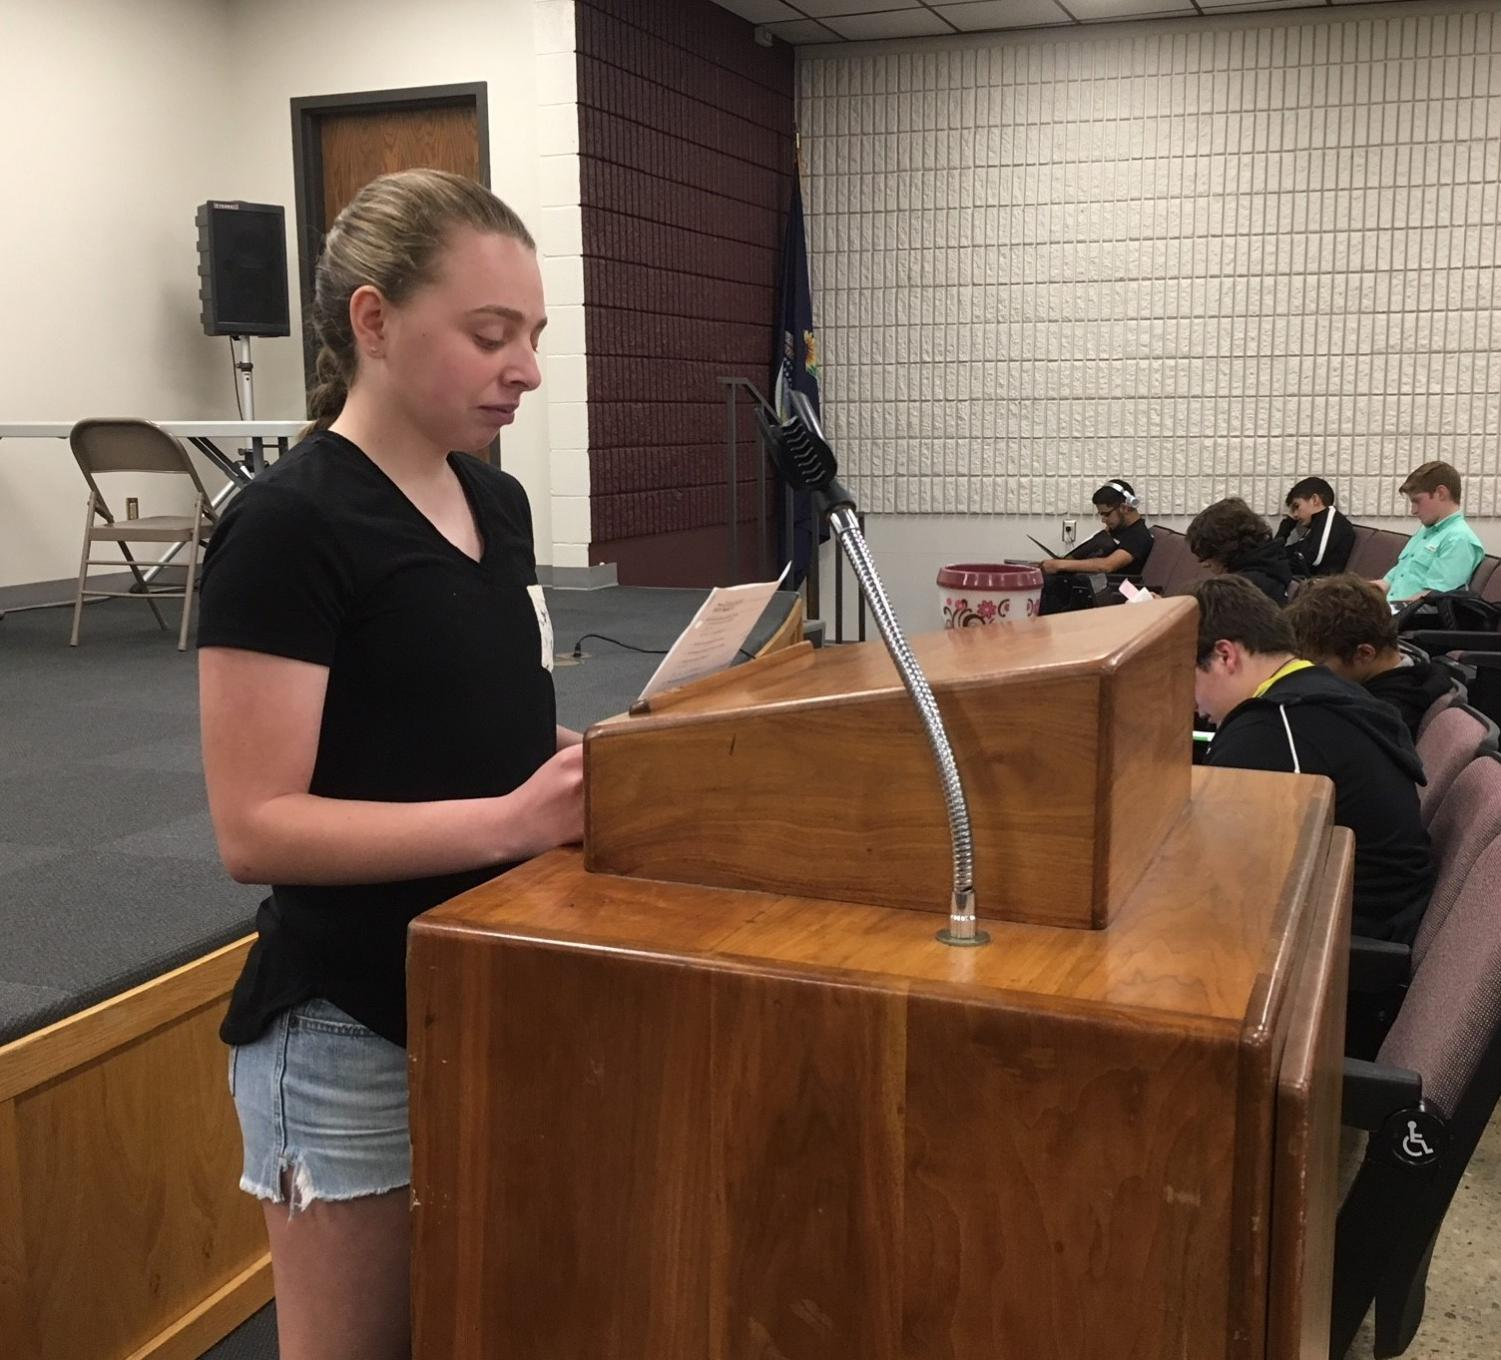 Freshman Anna Brull discusses why she wants to be a StuCo officer at the May 1 StuCo meeting. Eliana Buller, Allison Shubert, Ginny Ke, Kassidy Winter and Alicia Feyerherm also tried out for the sophomore officer positions. Kassidy Winter was elected as sophomore class president and Alicia Feyerherm was elected as sophomore class vice-president.